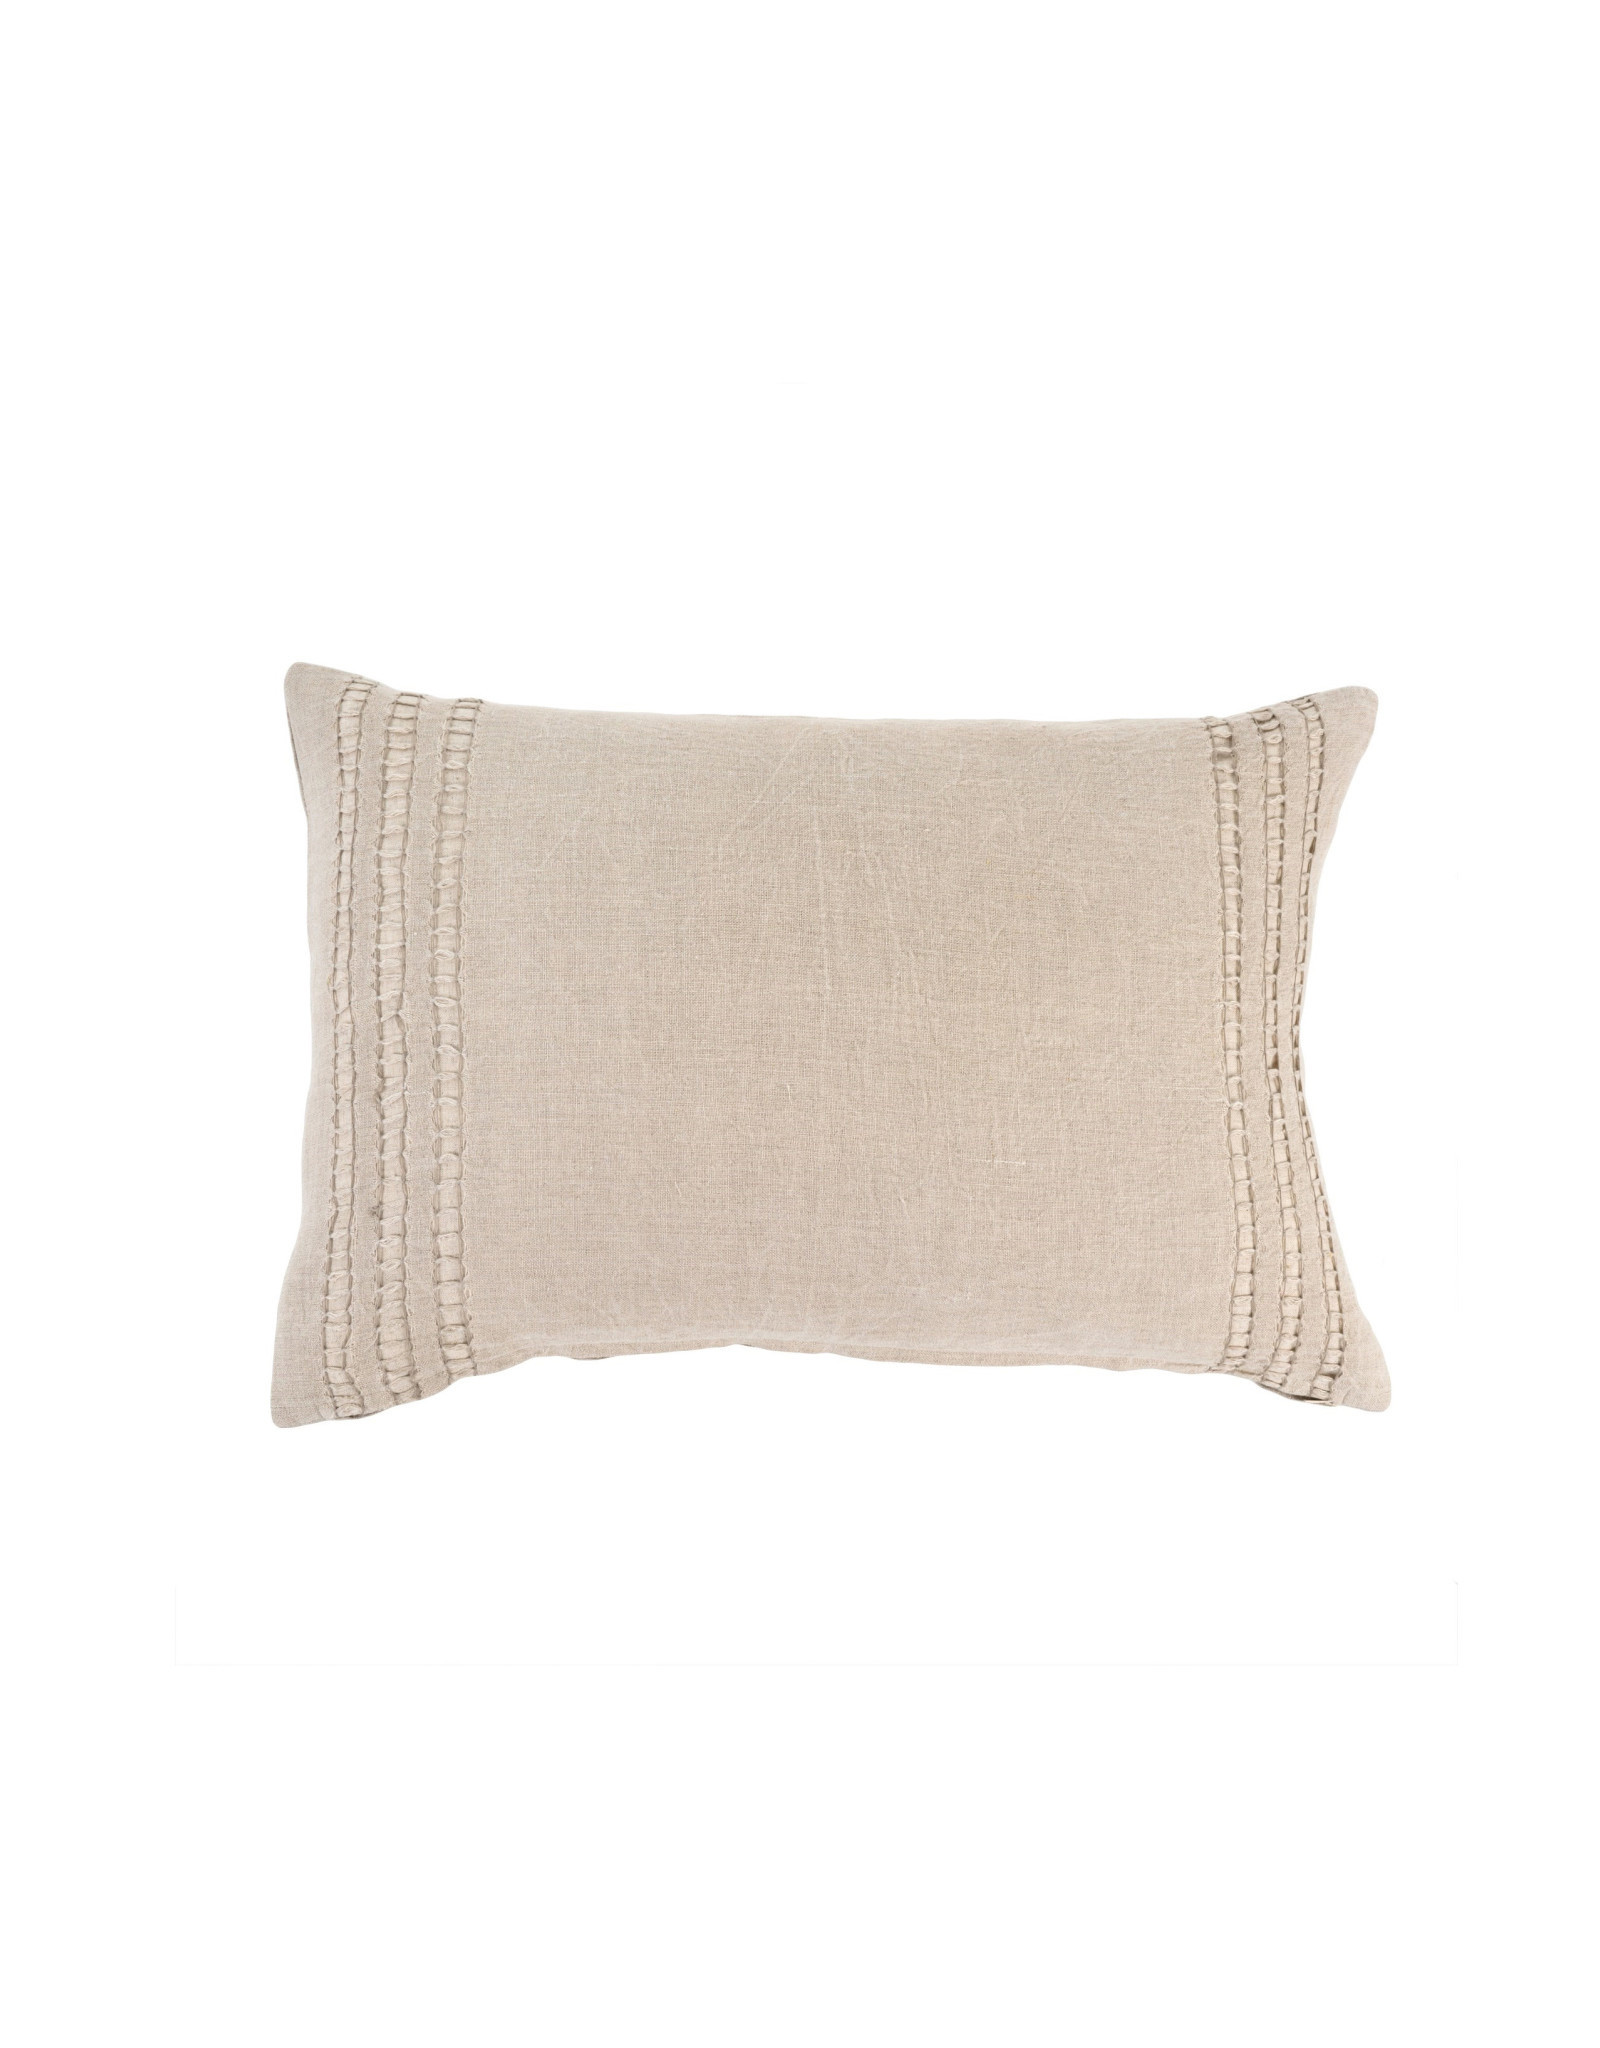 Coventina Lumbar Pillow - Natural